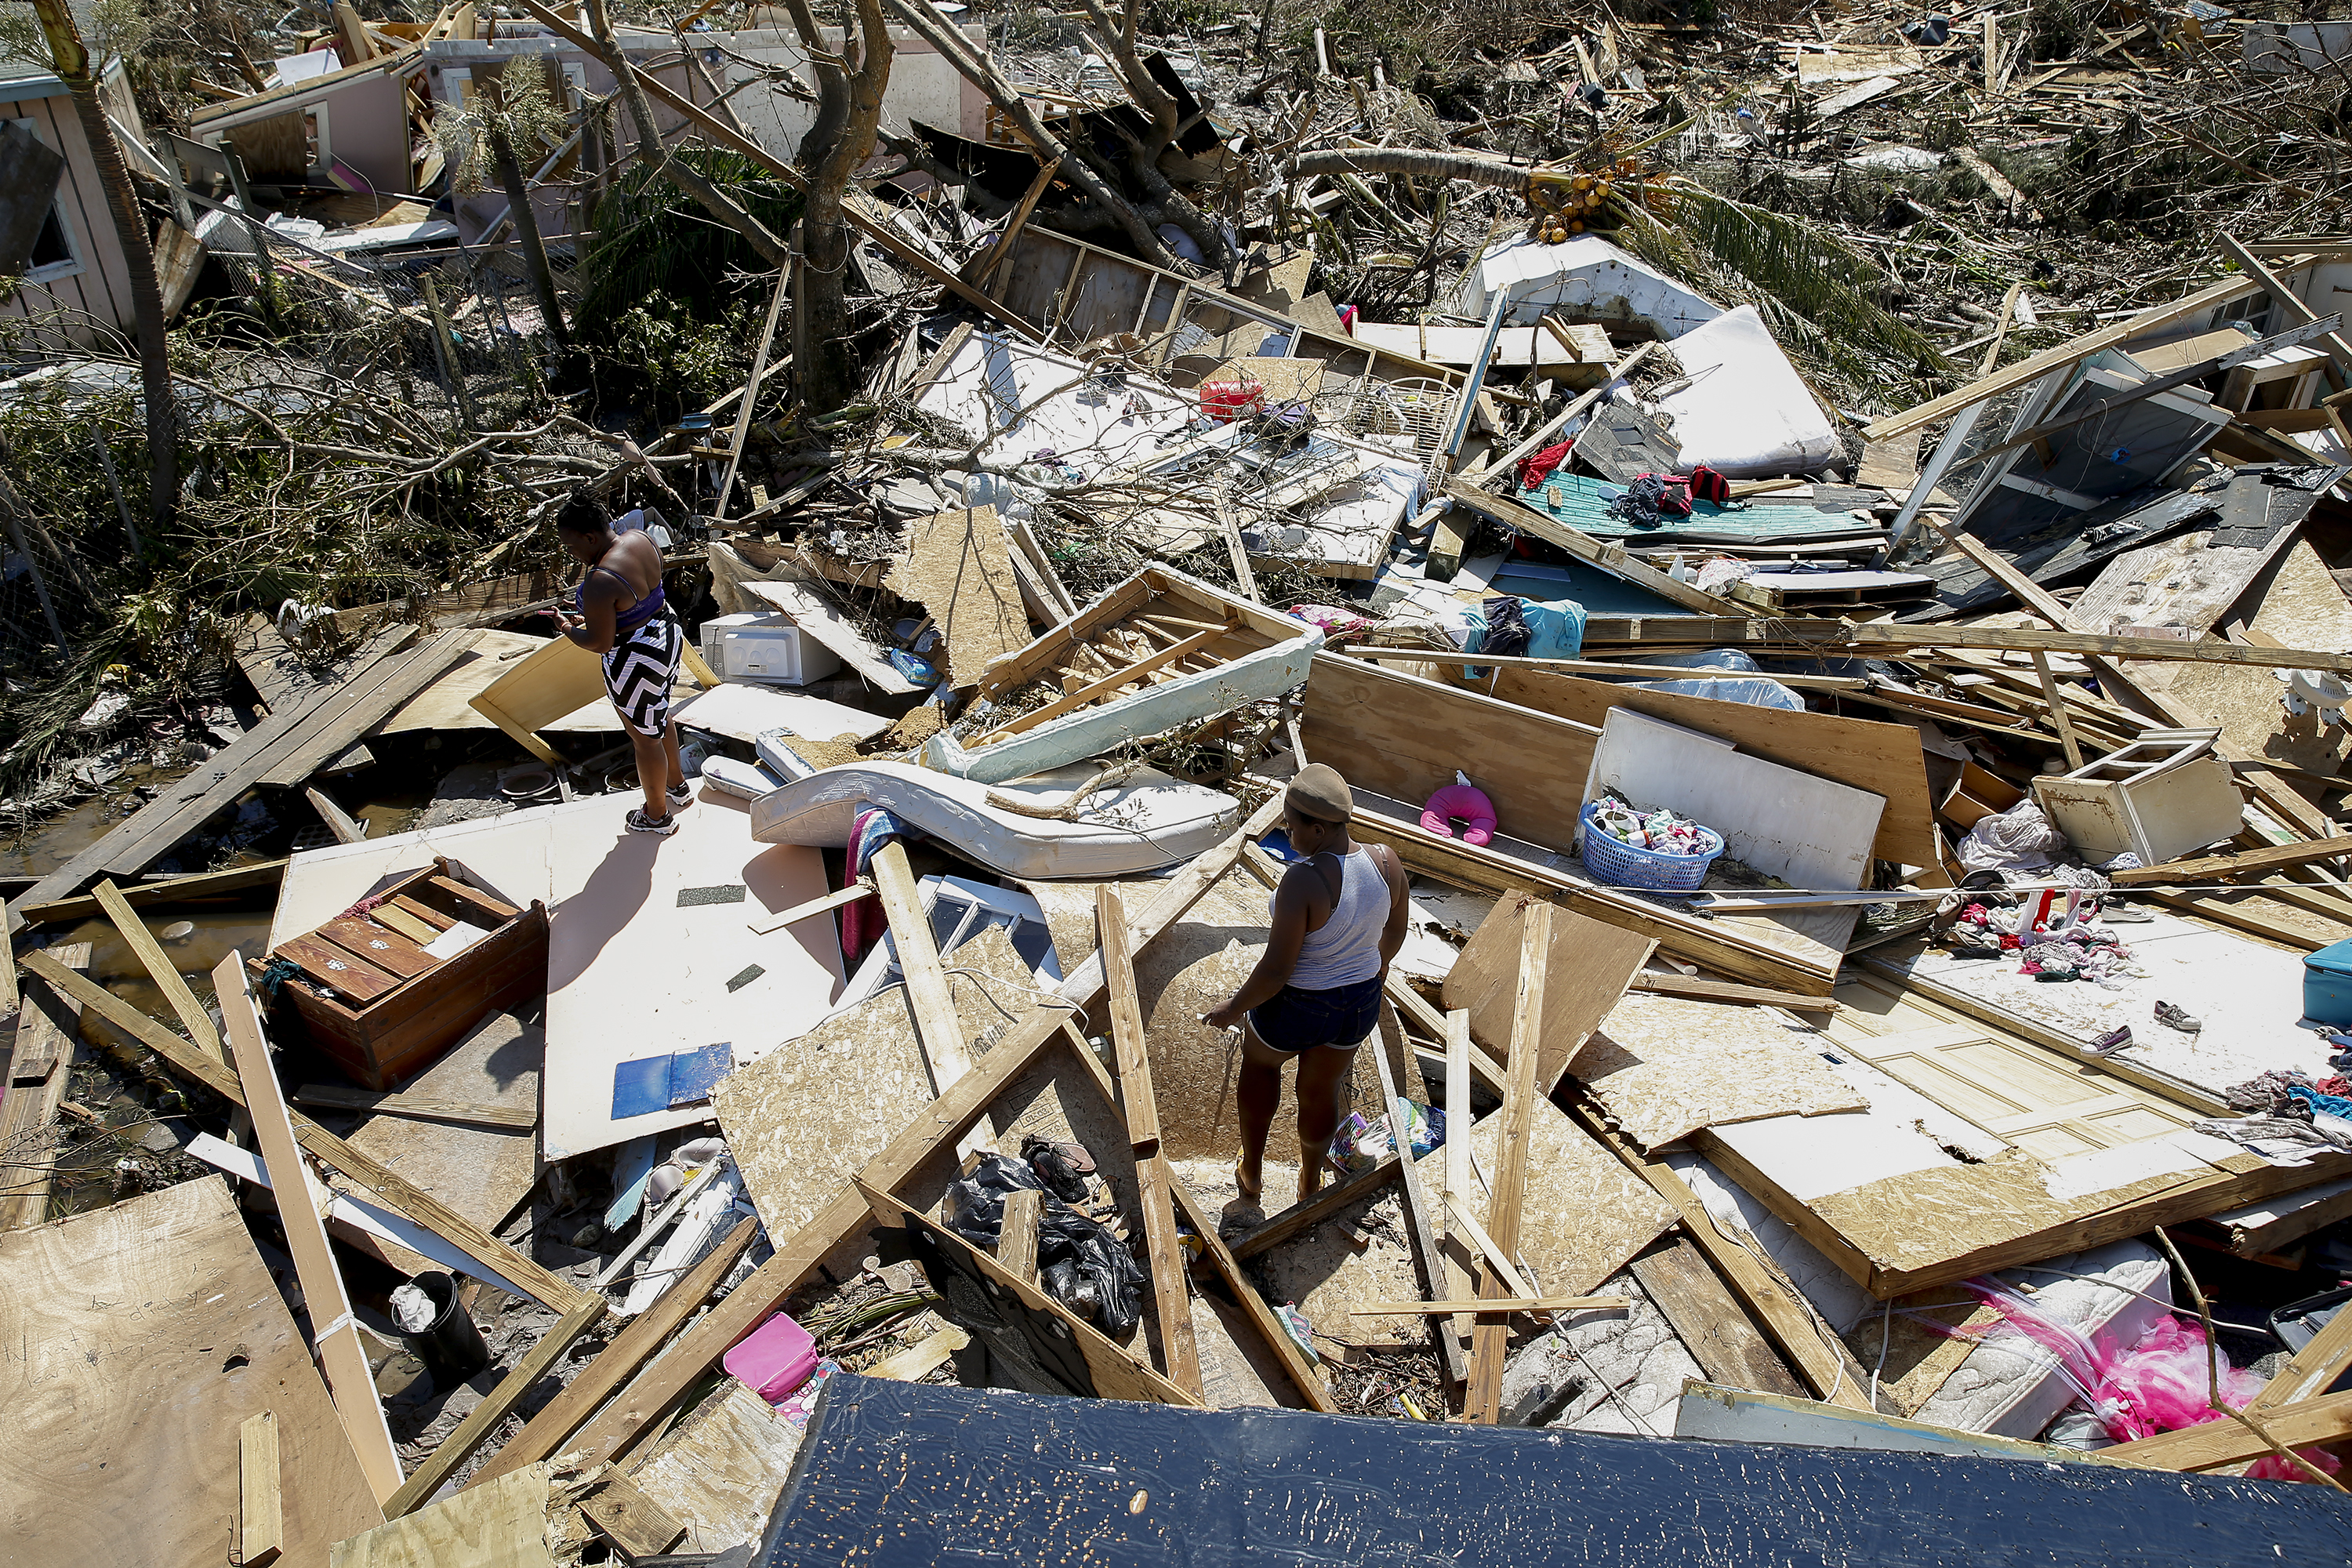 Two women look for lost items after Hurricane Dorian passed through in The Mudd area of Marsh Harbour on September 5, 2019 in Great Abaco Island, Bahamas. (Jose Jimenez/Getty Images)